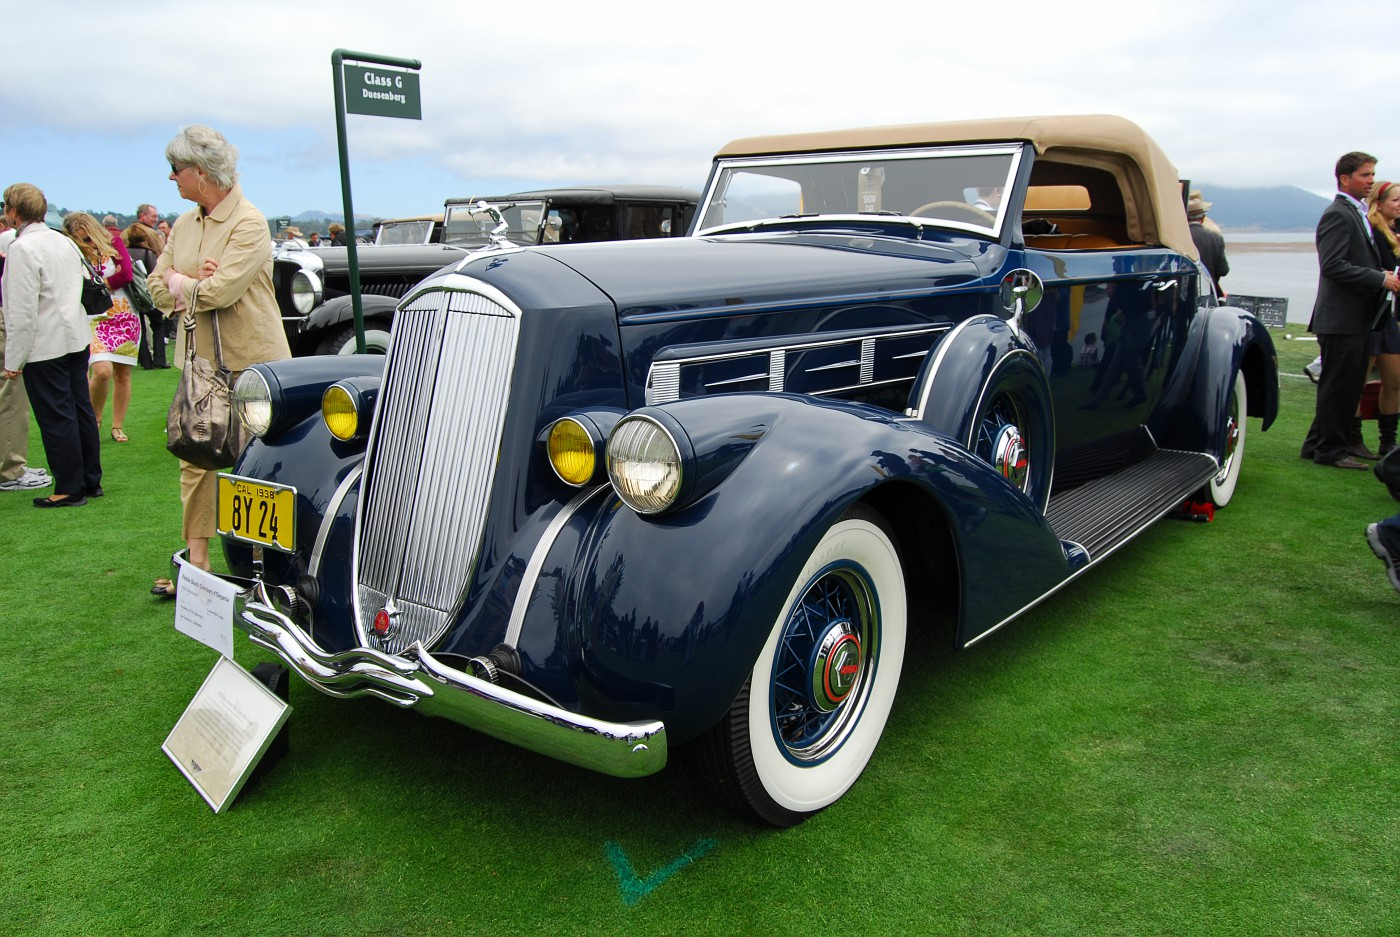 1938 Pierce-Arrow 1801 Convertible Coupe front exterior view